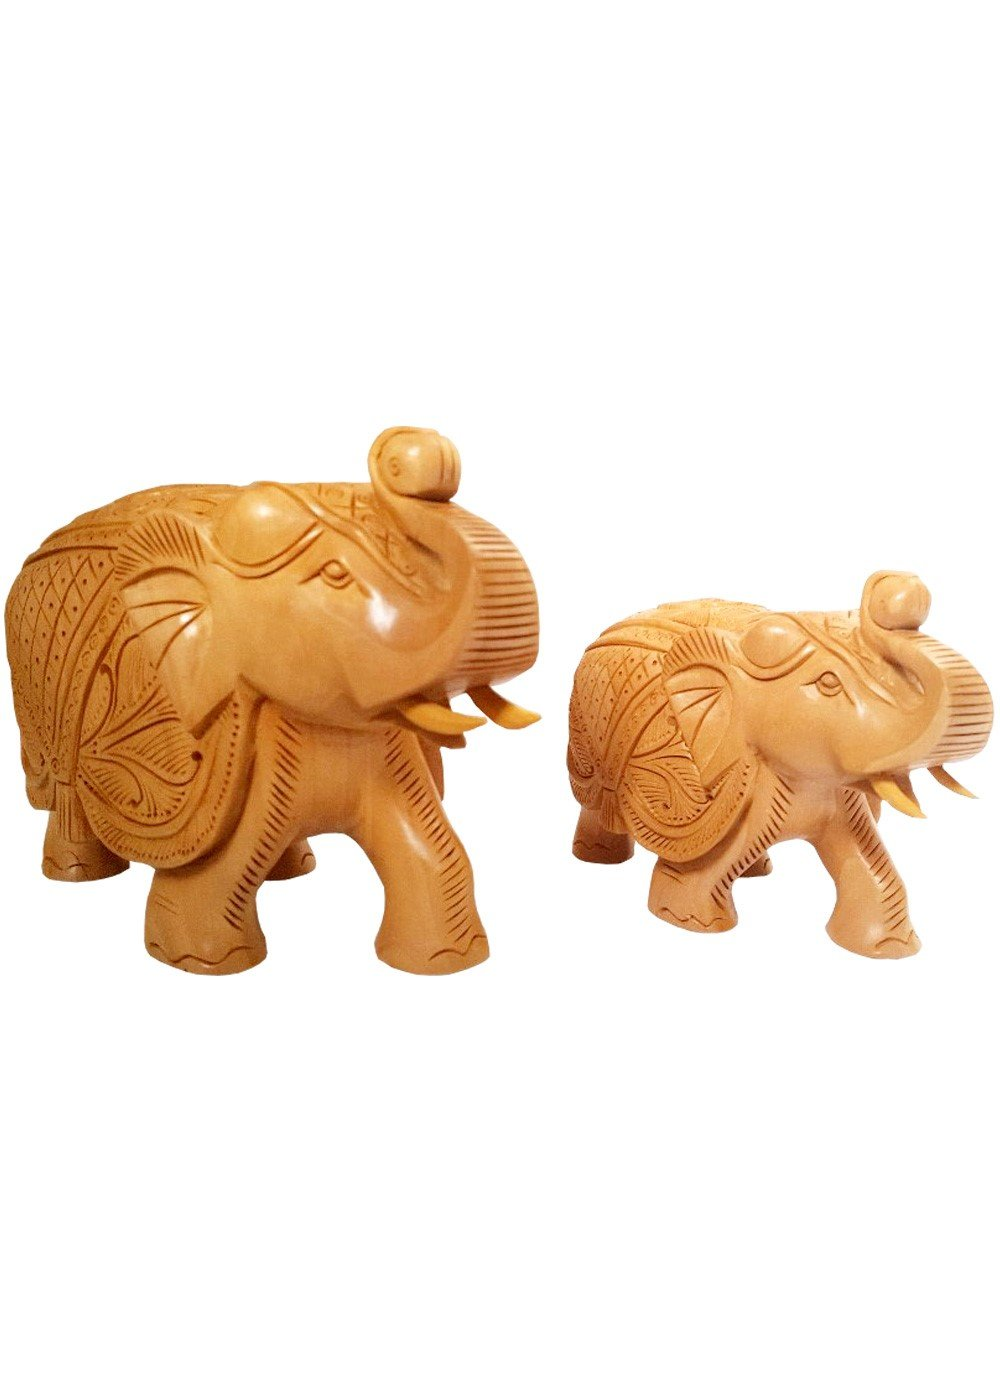 Wooden Handcarved Elephant 3 & 4 inches